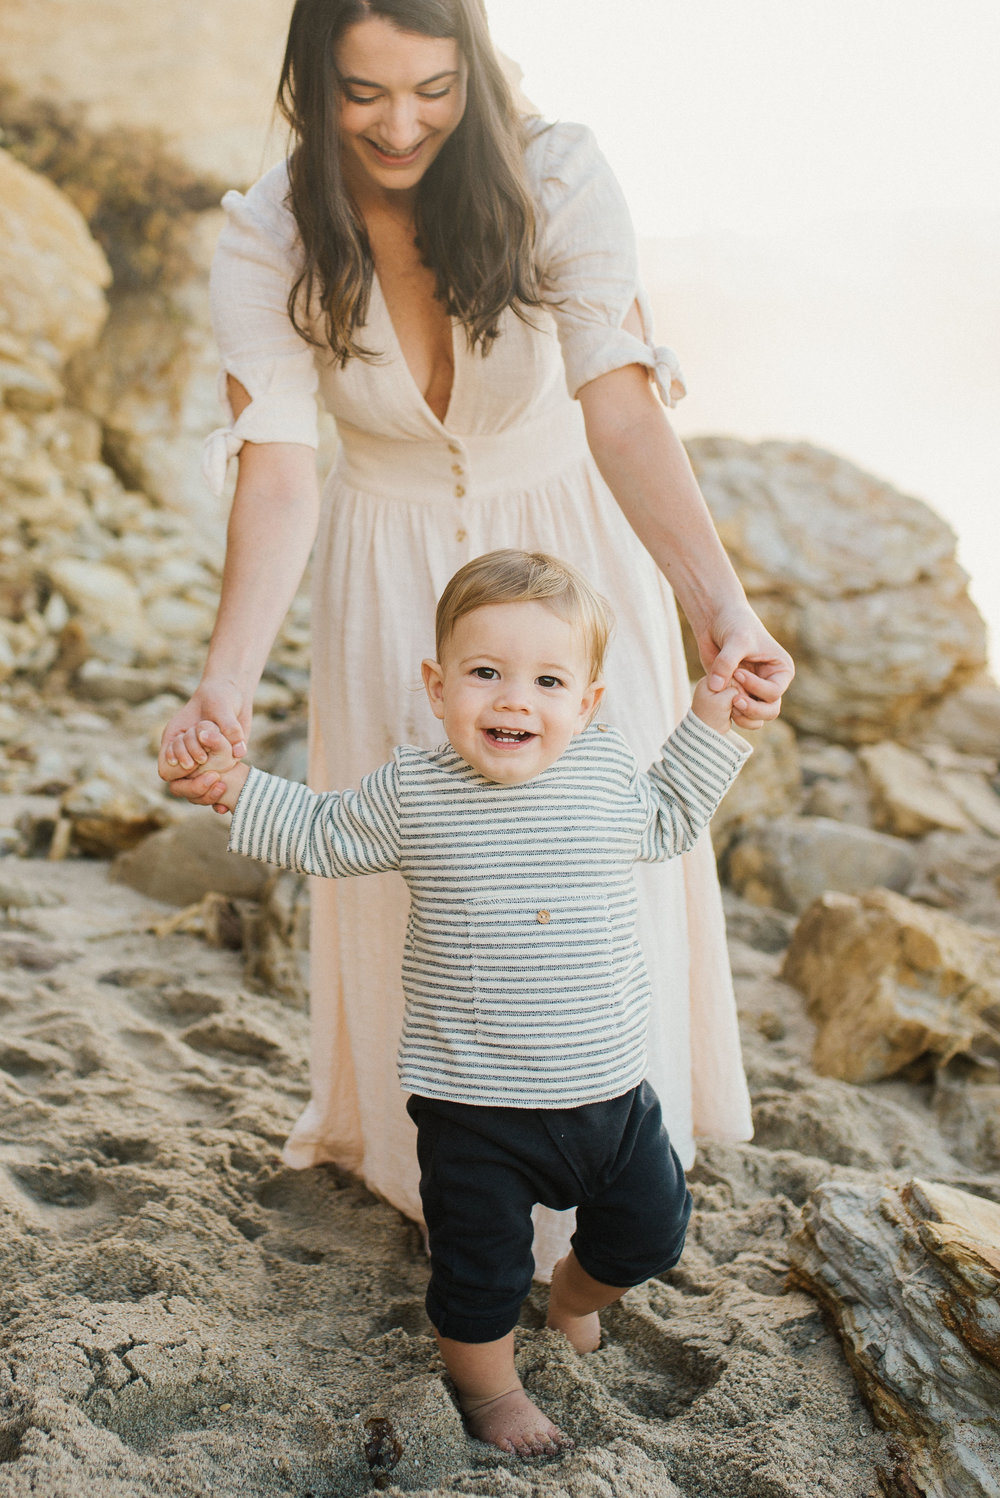 One Year Baby Boy | Newport Beach Photographer, Sonja Hammad | Victoria Austin